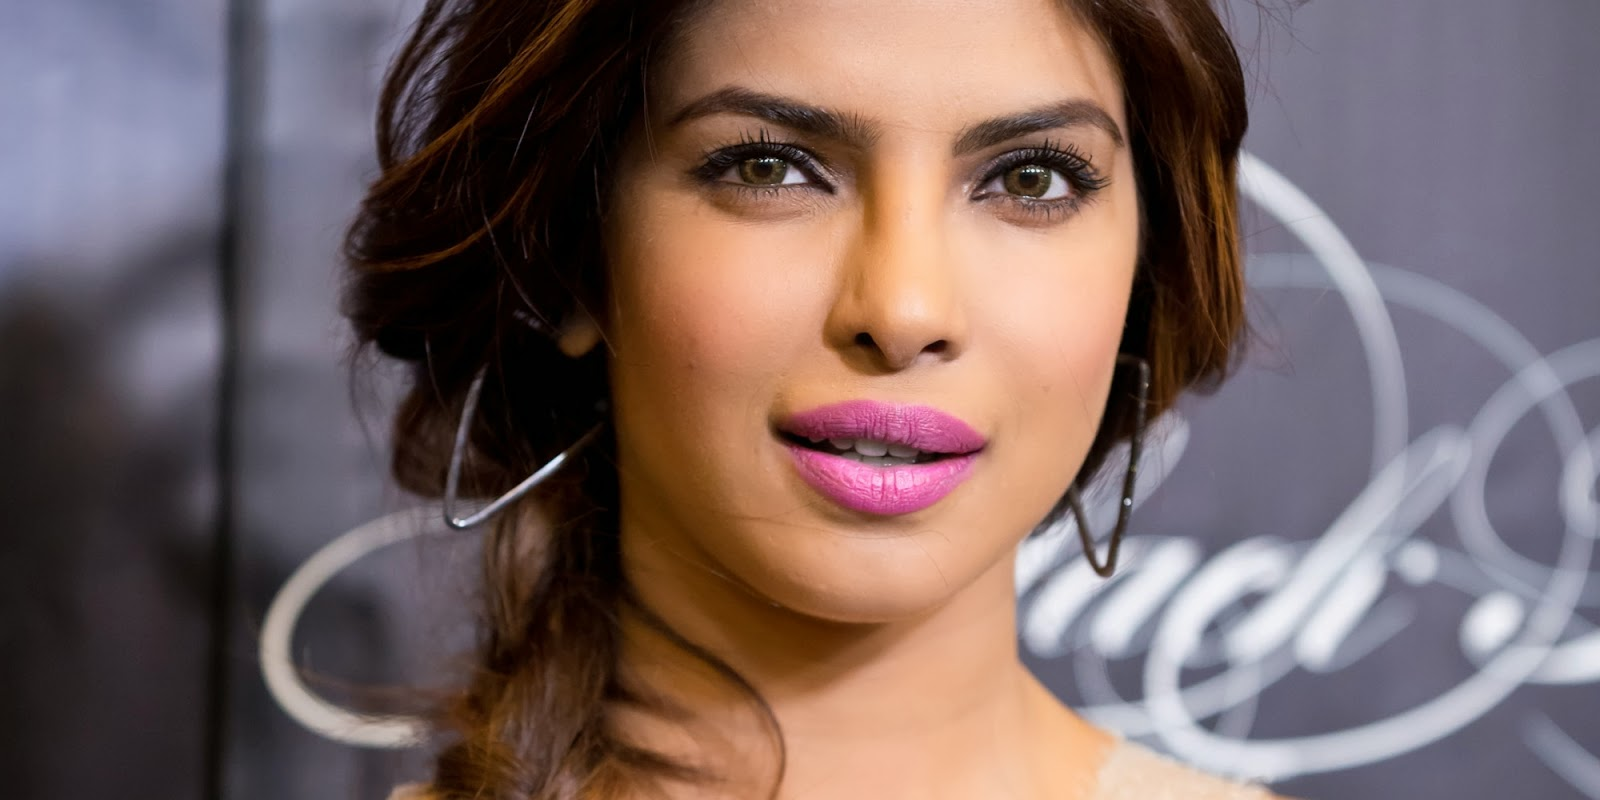 Priyanka celebrates her birthday today, 18 July